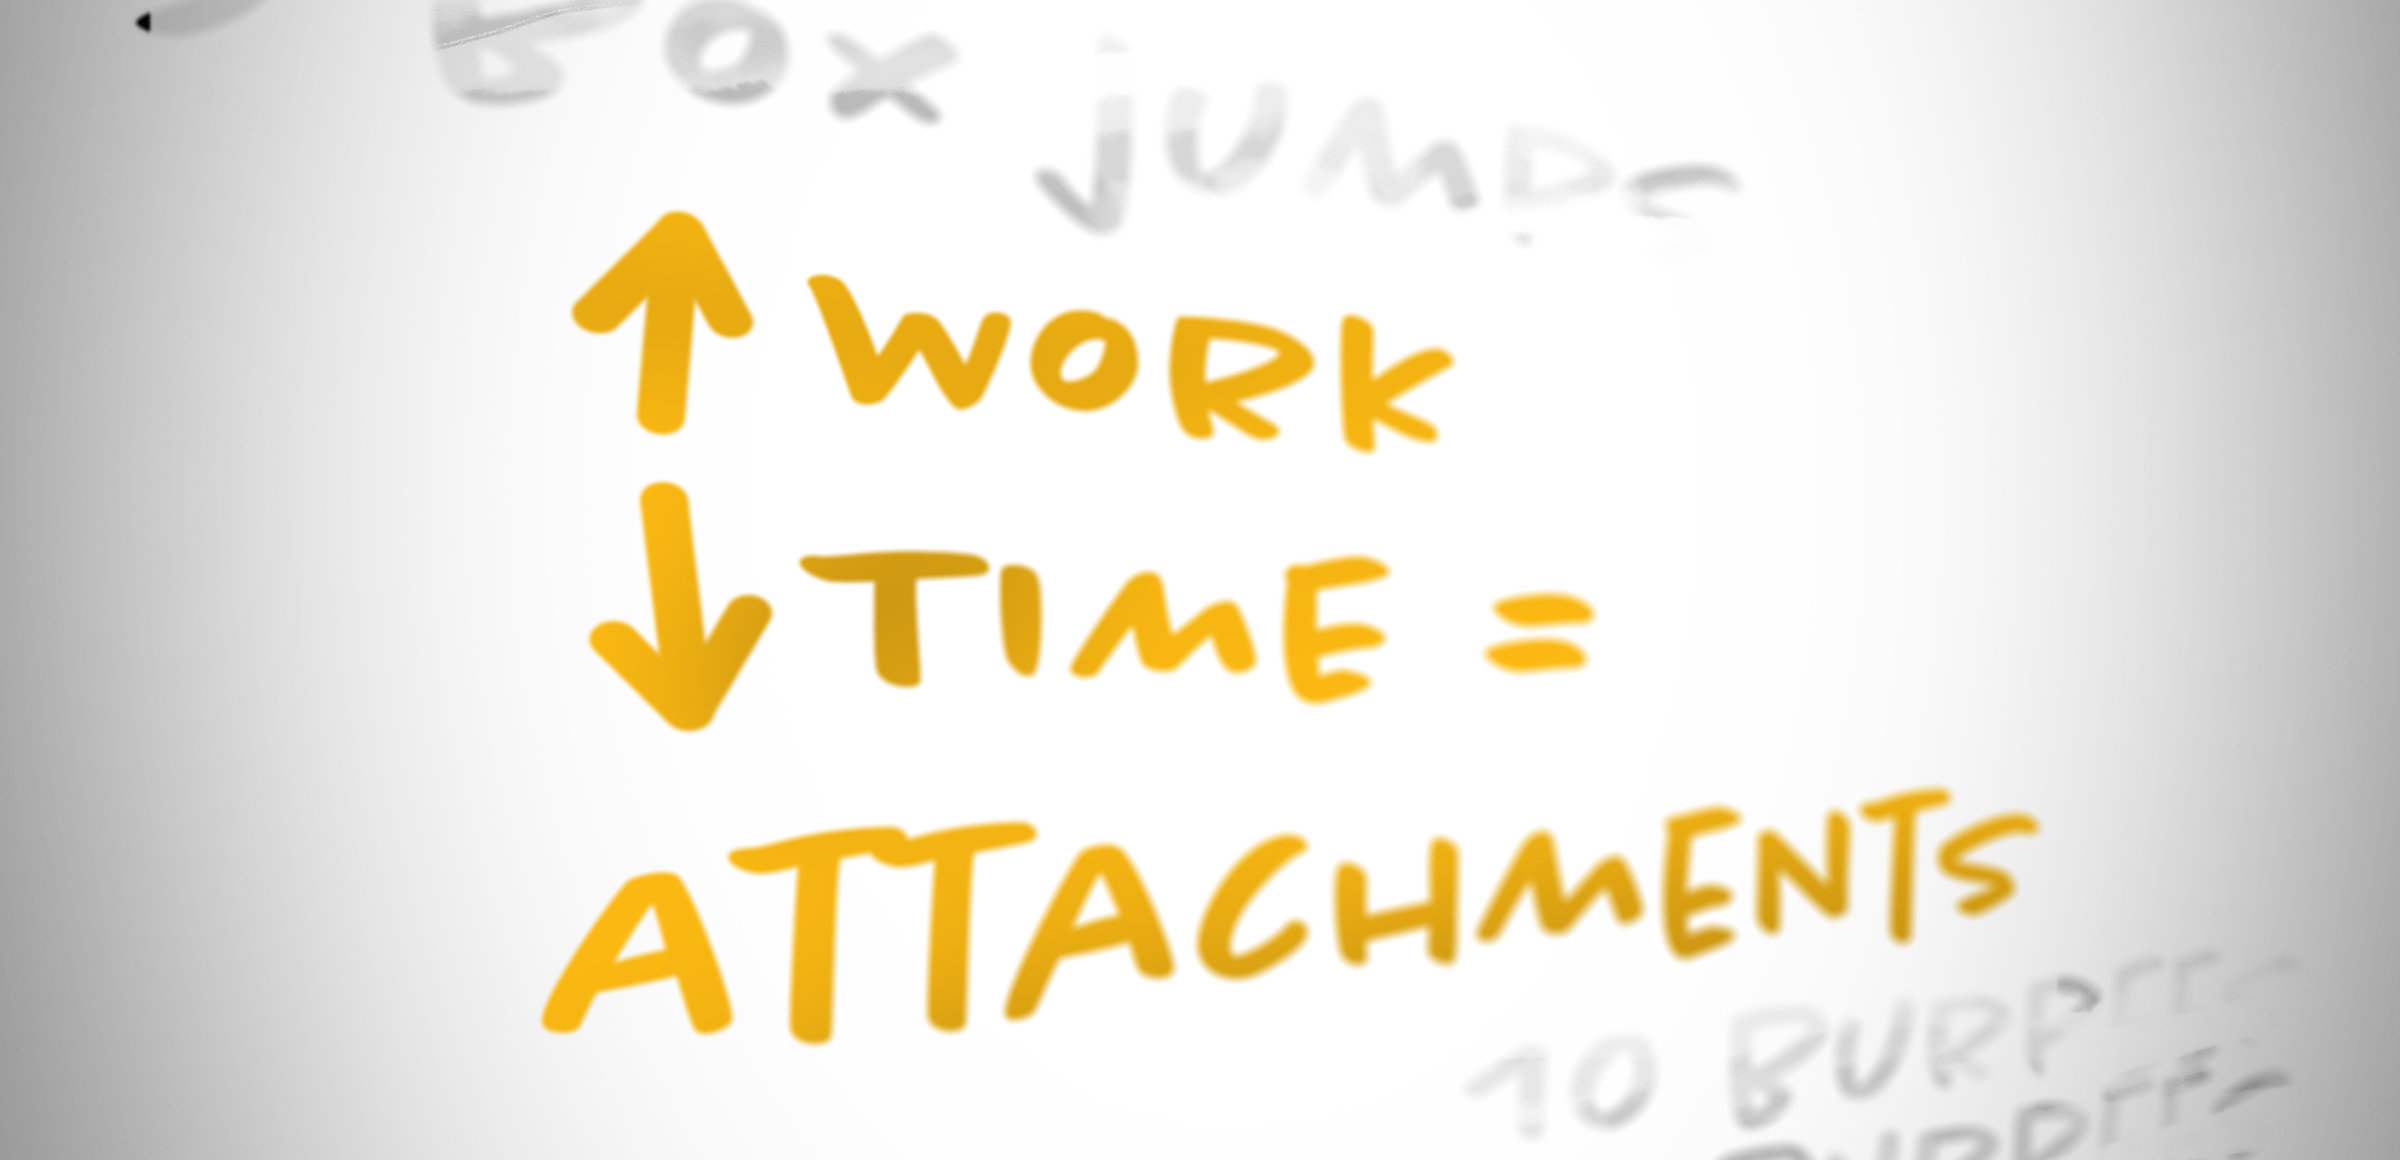 More Work, Less Time = Attachments